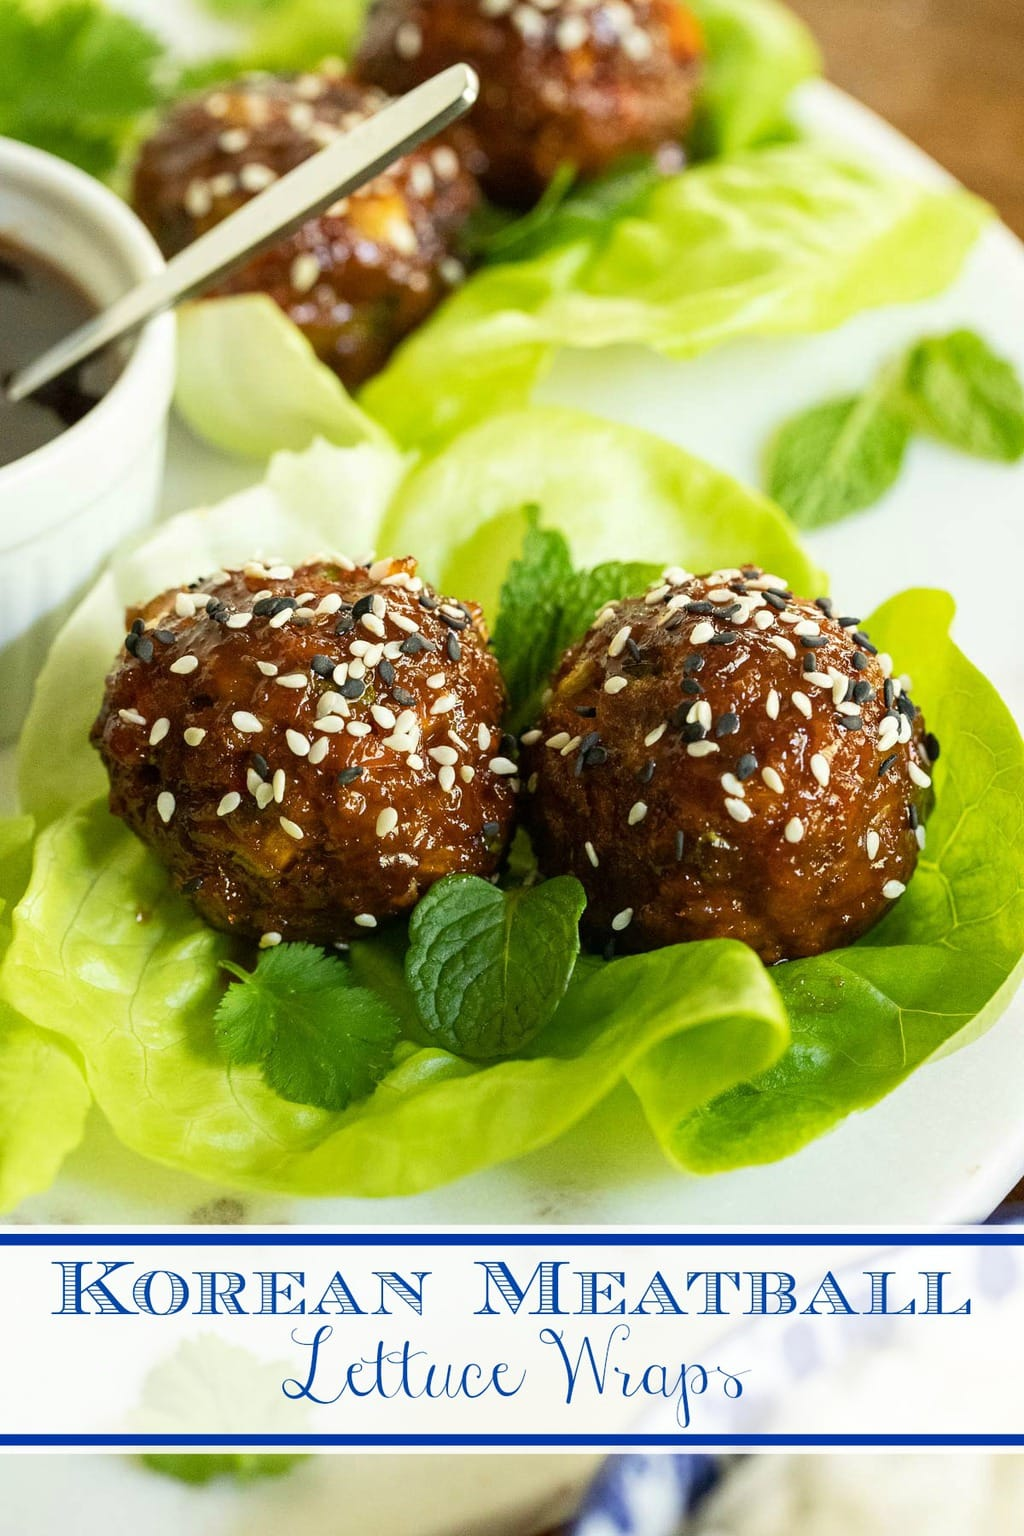 Korean Meatball Lettuce Wraps